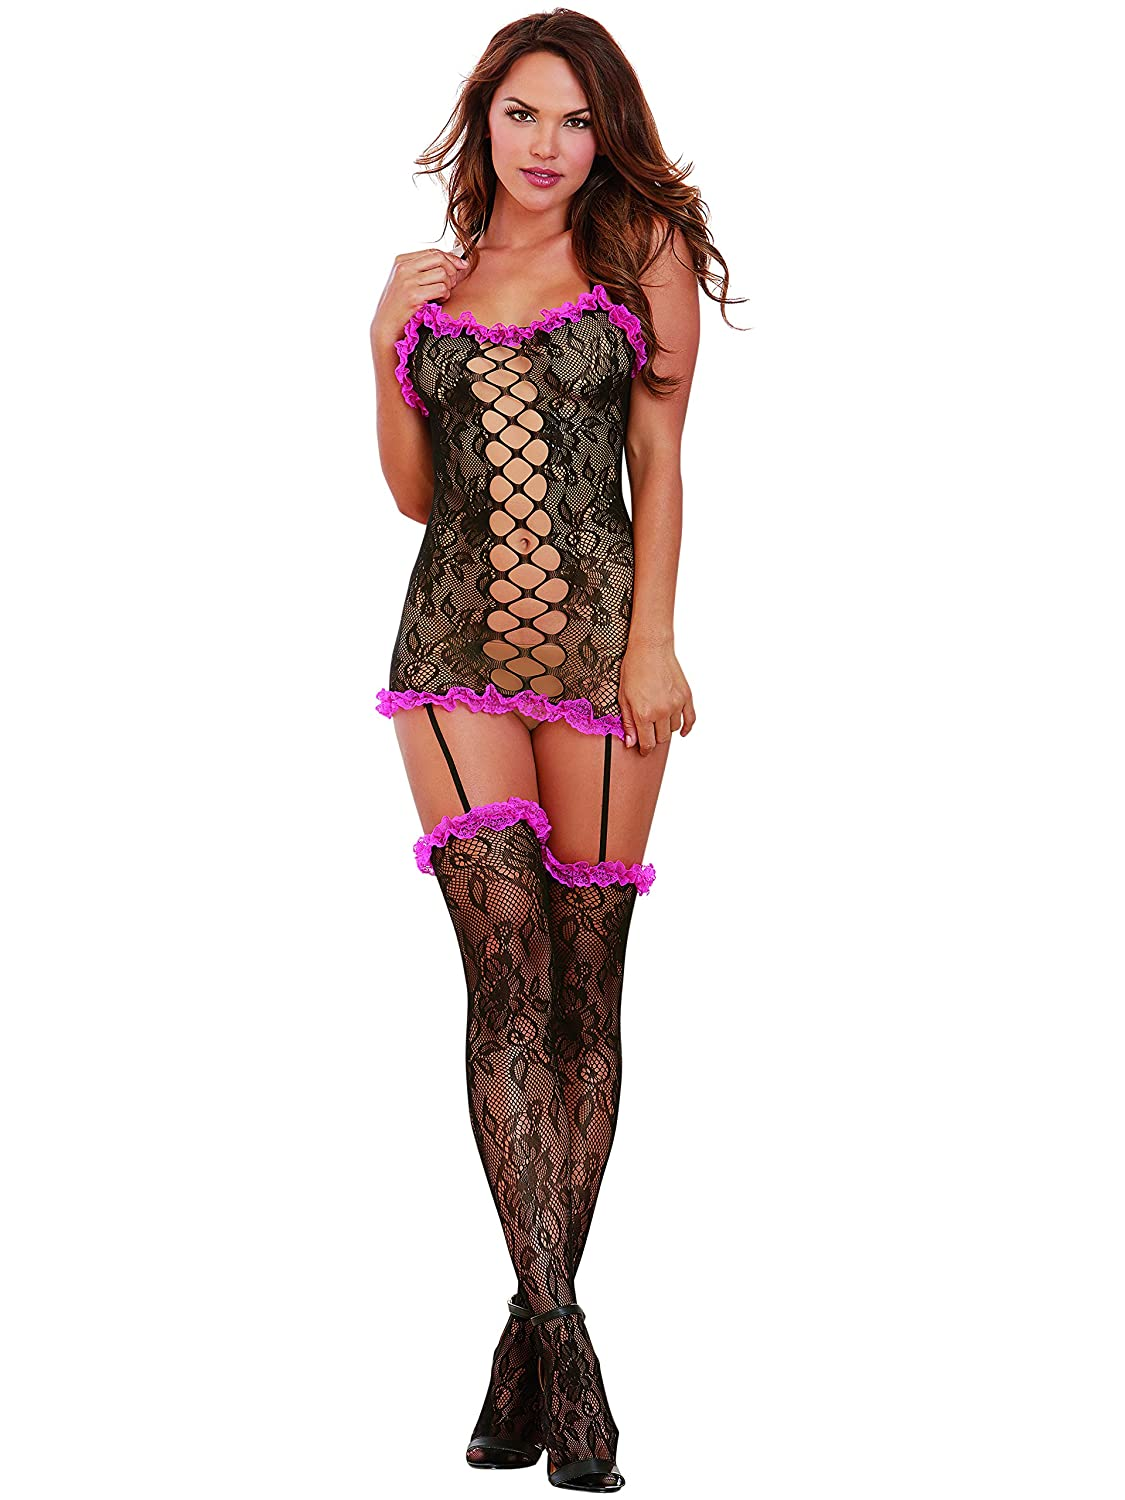 DreamGirl Women's Masala Garter Dress With Attached Thigh Highs Dreamgirl International 0187